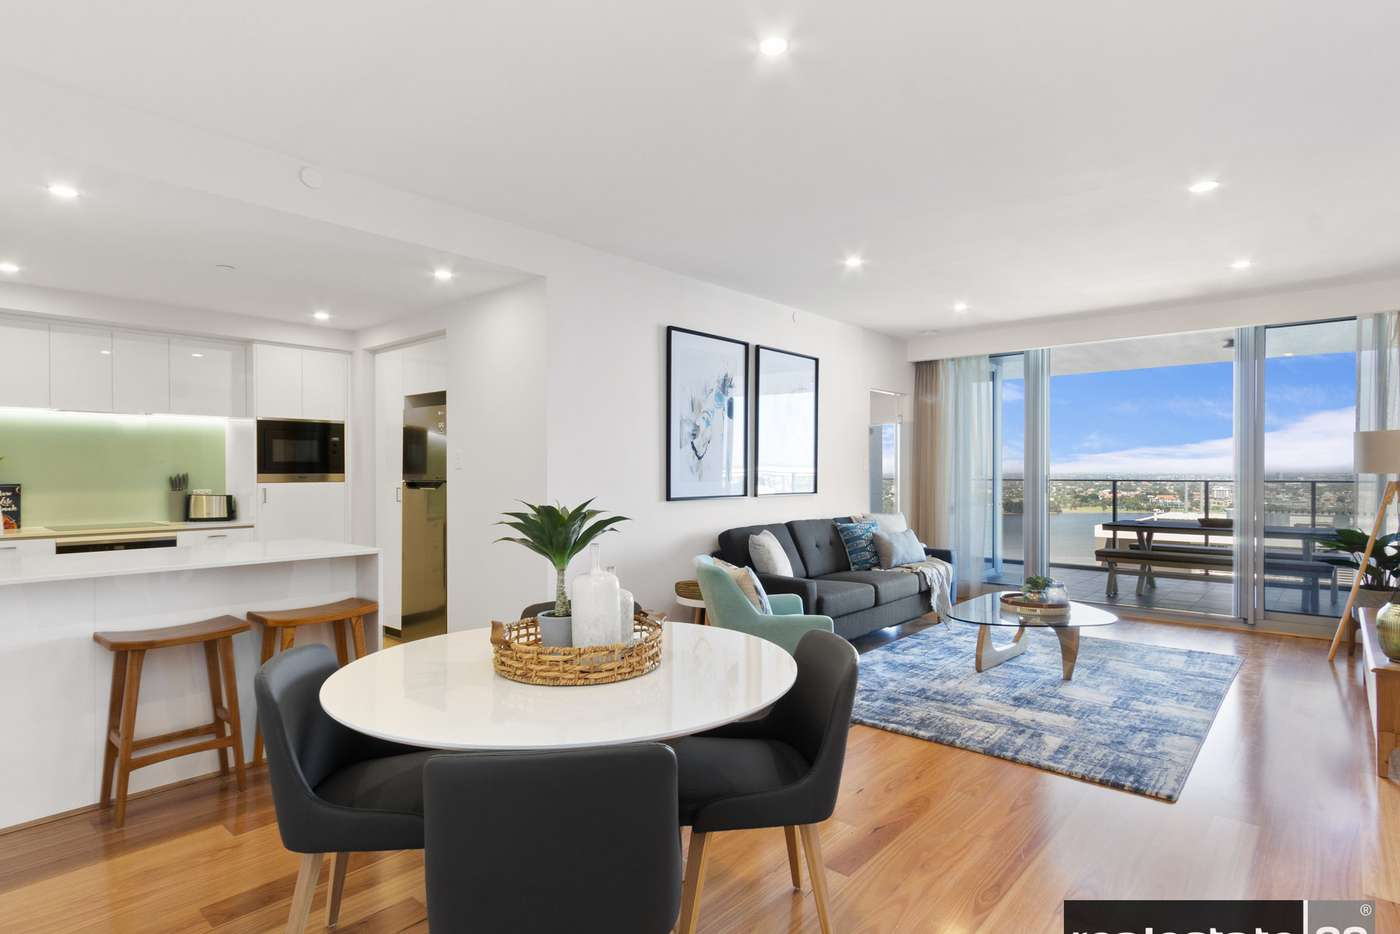 Sixth view of Homely apartment listing, 142/189 Adelaide Terrace, East Perth WA 6004